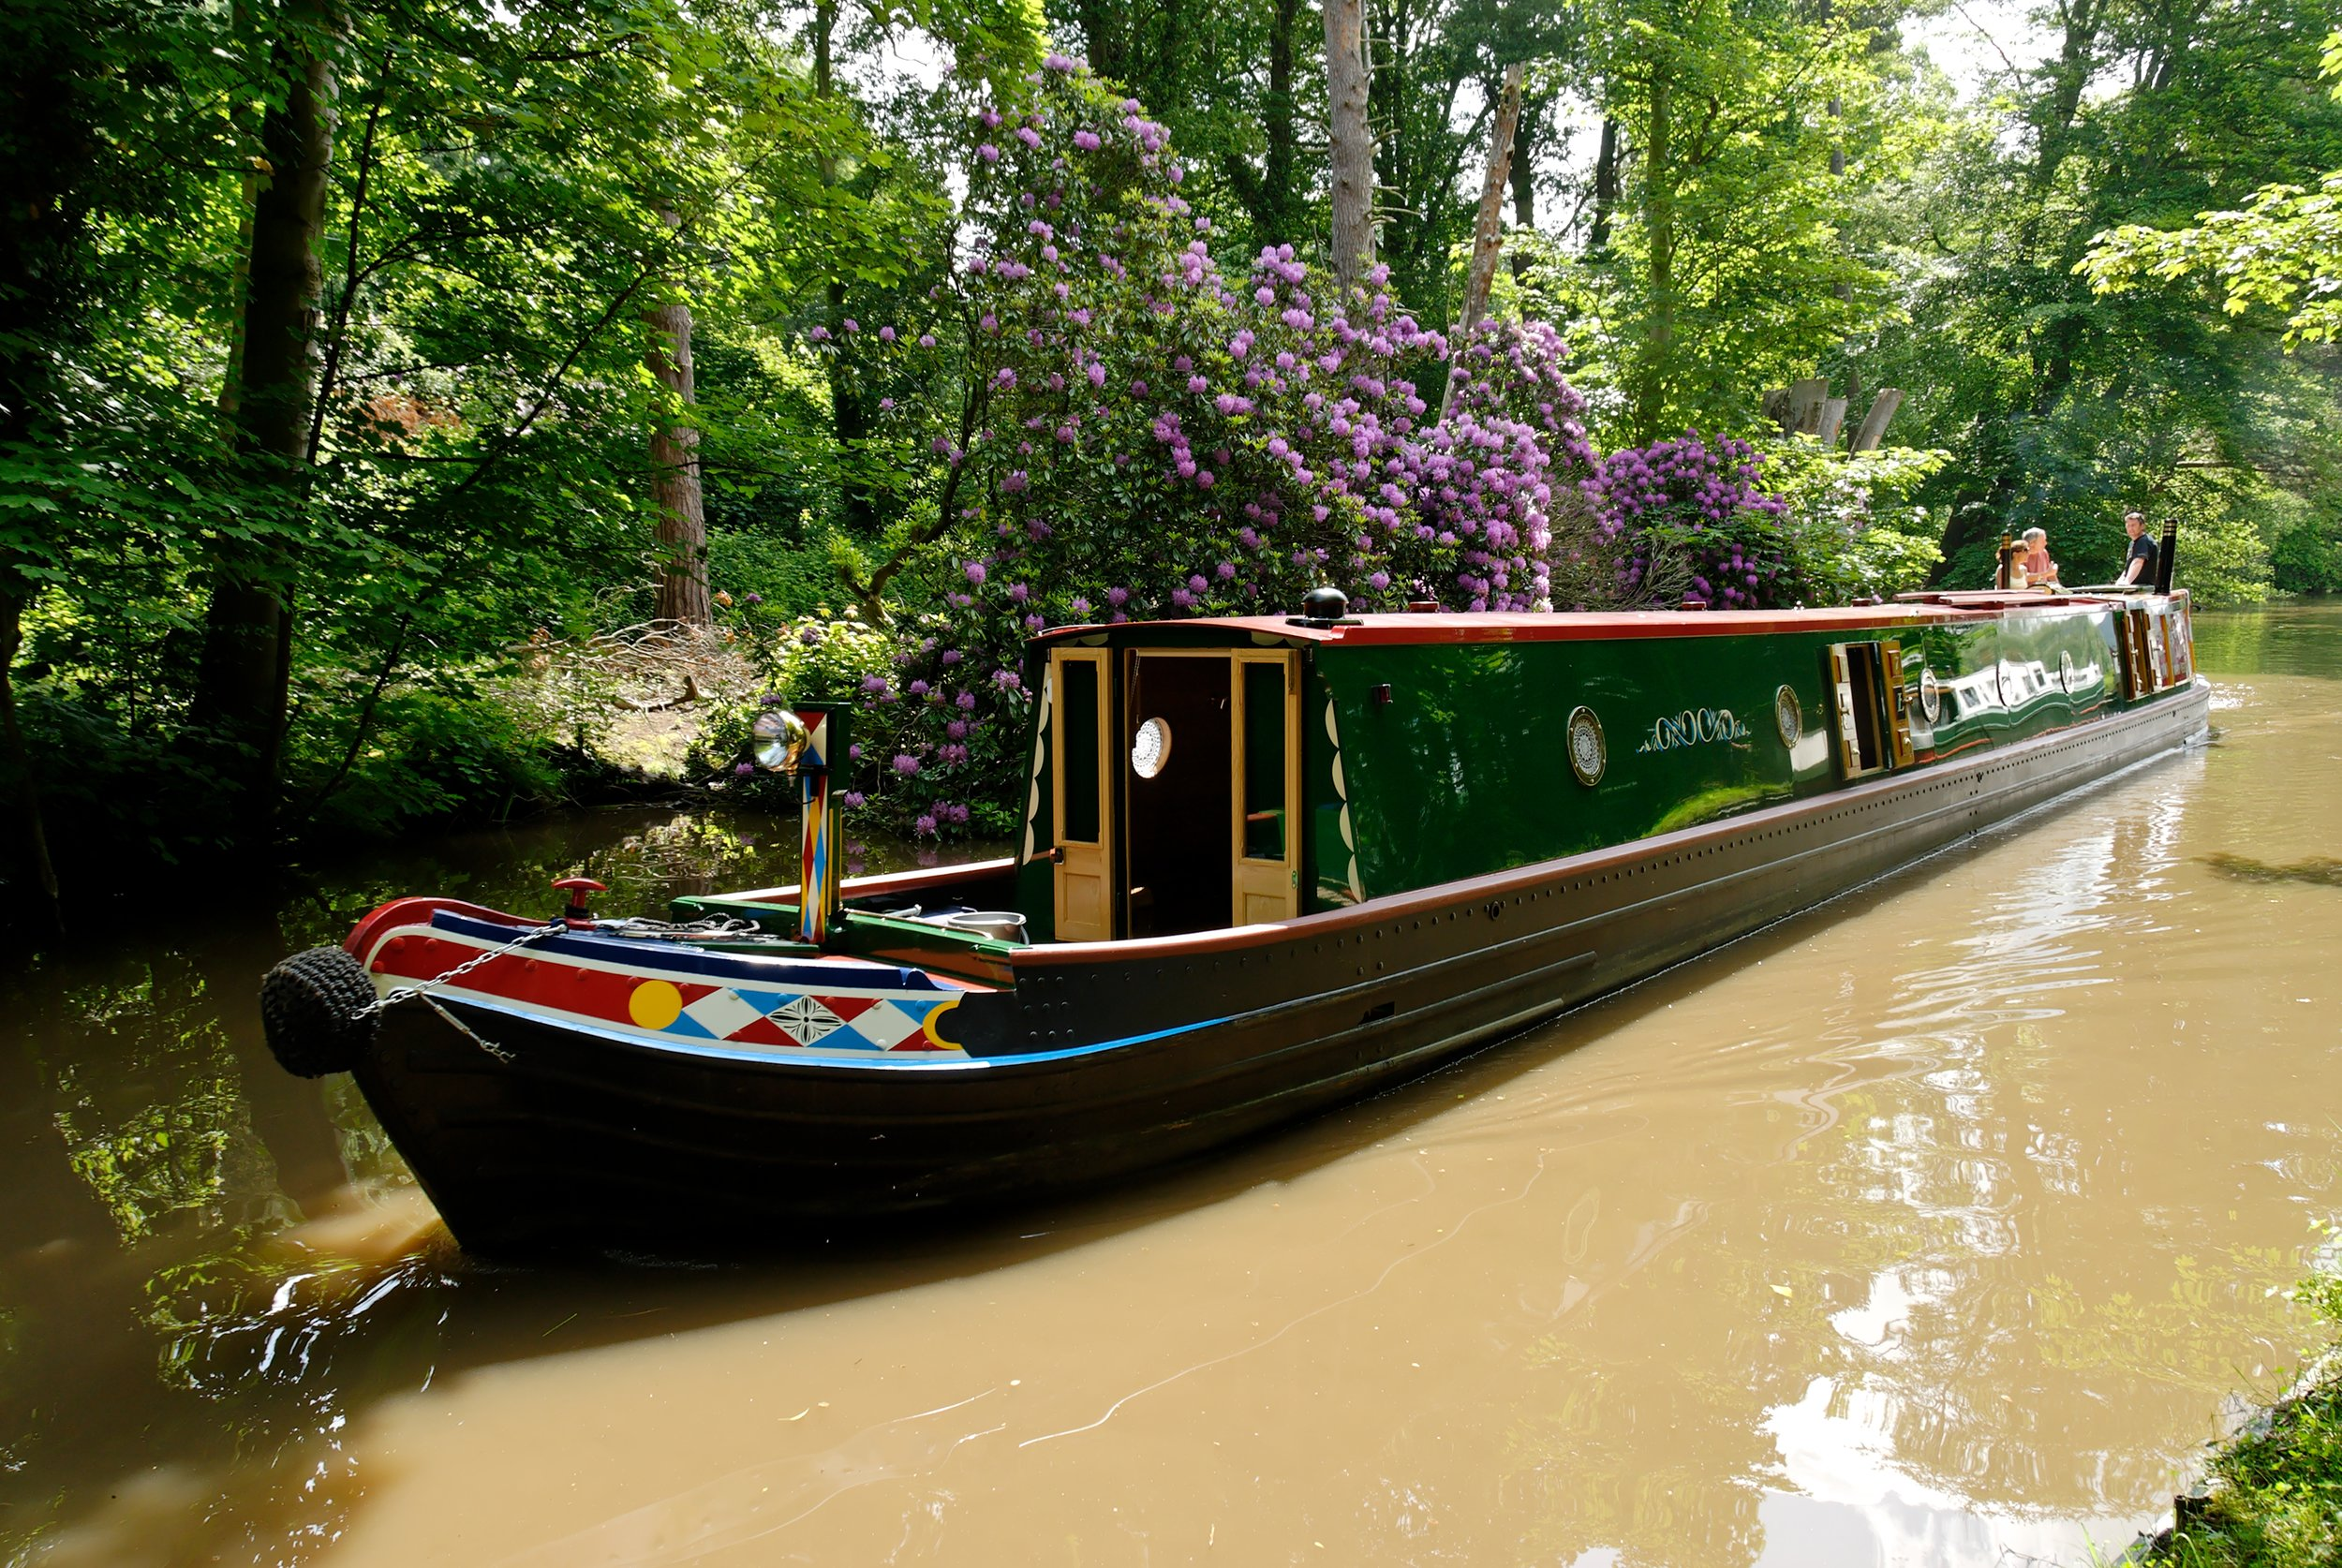 Prices - £428.00 per foot for Traditional Josher50' - £21,400.0057' - £24,396.0062' - £26,536.0070' - £29,960.00£480.00 per foot for Sheerline Josher50' - £24,100.0057' - £27,360.0062' - £29,884.0070' - £33,740.00